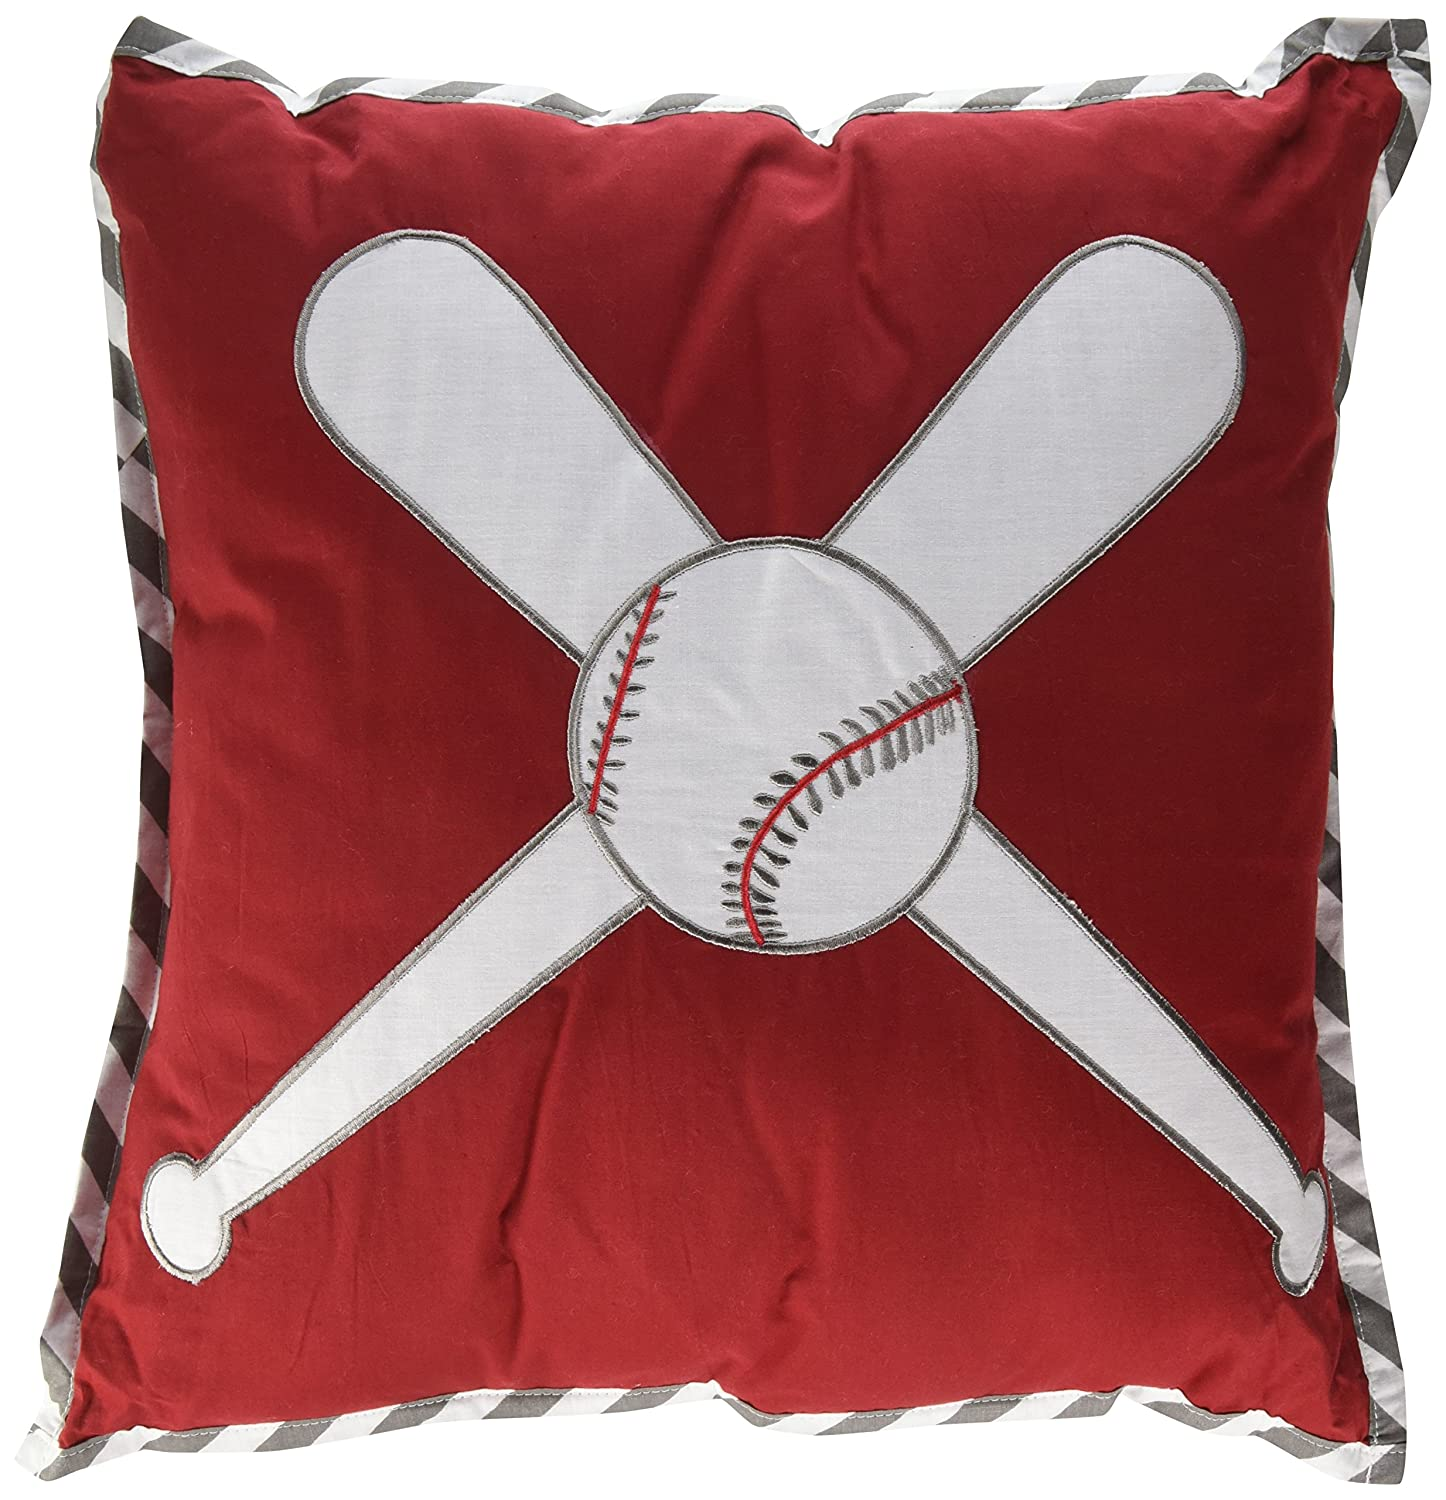 Bacati Baseball Muslin Dec Pillow, Red/Grey